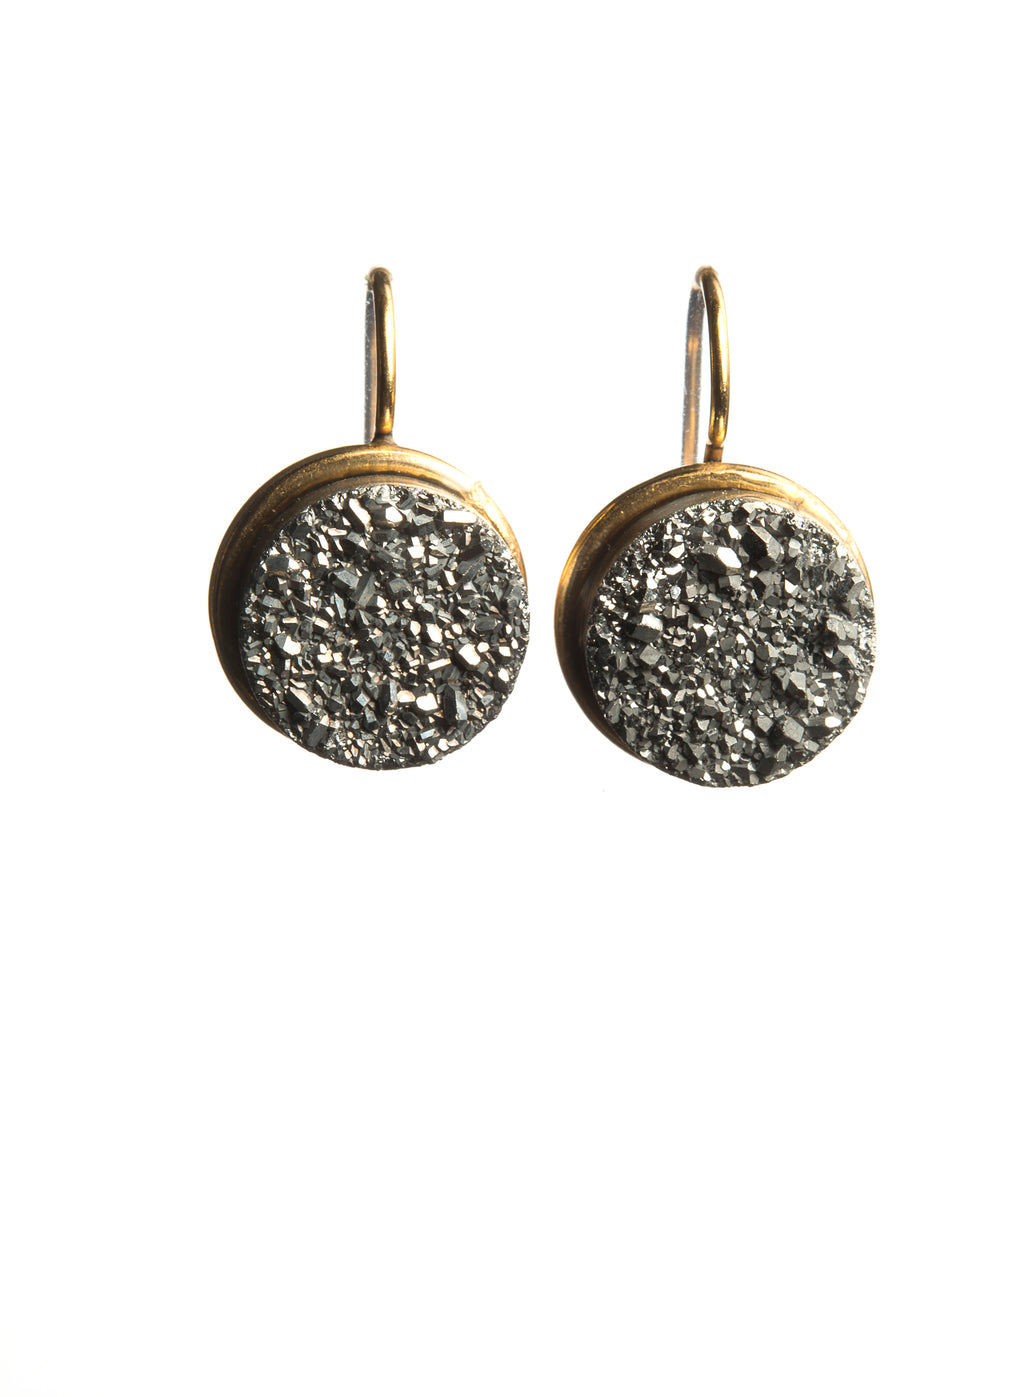 DRUZY EARRINGS THE AVA - Ava Cadiz